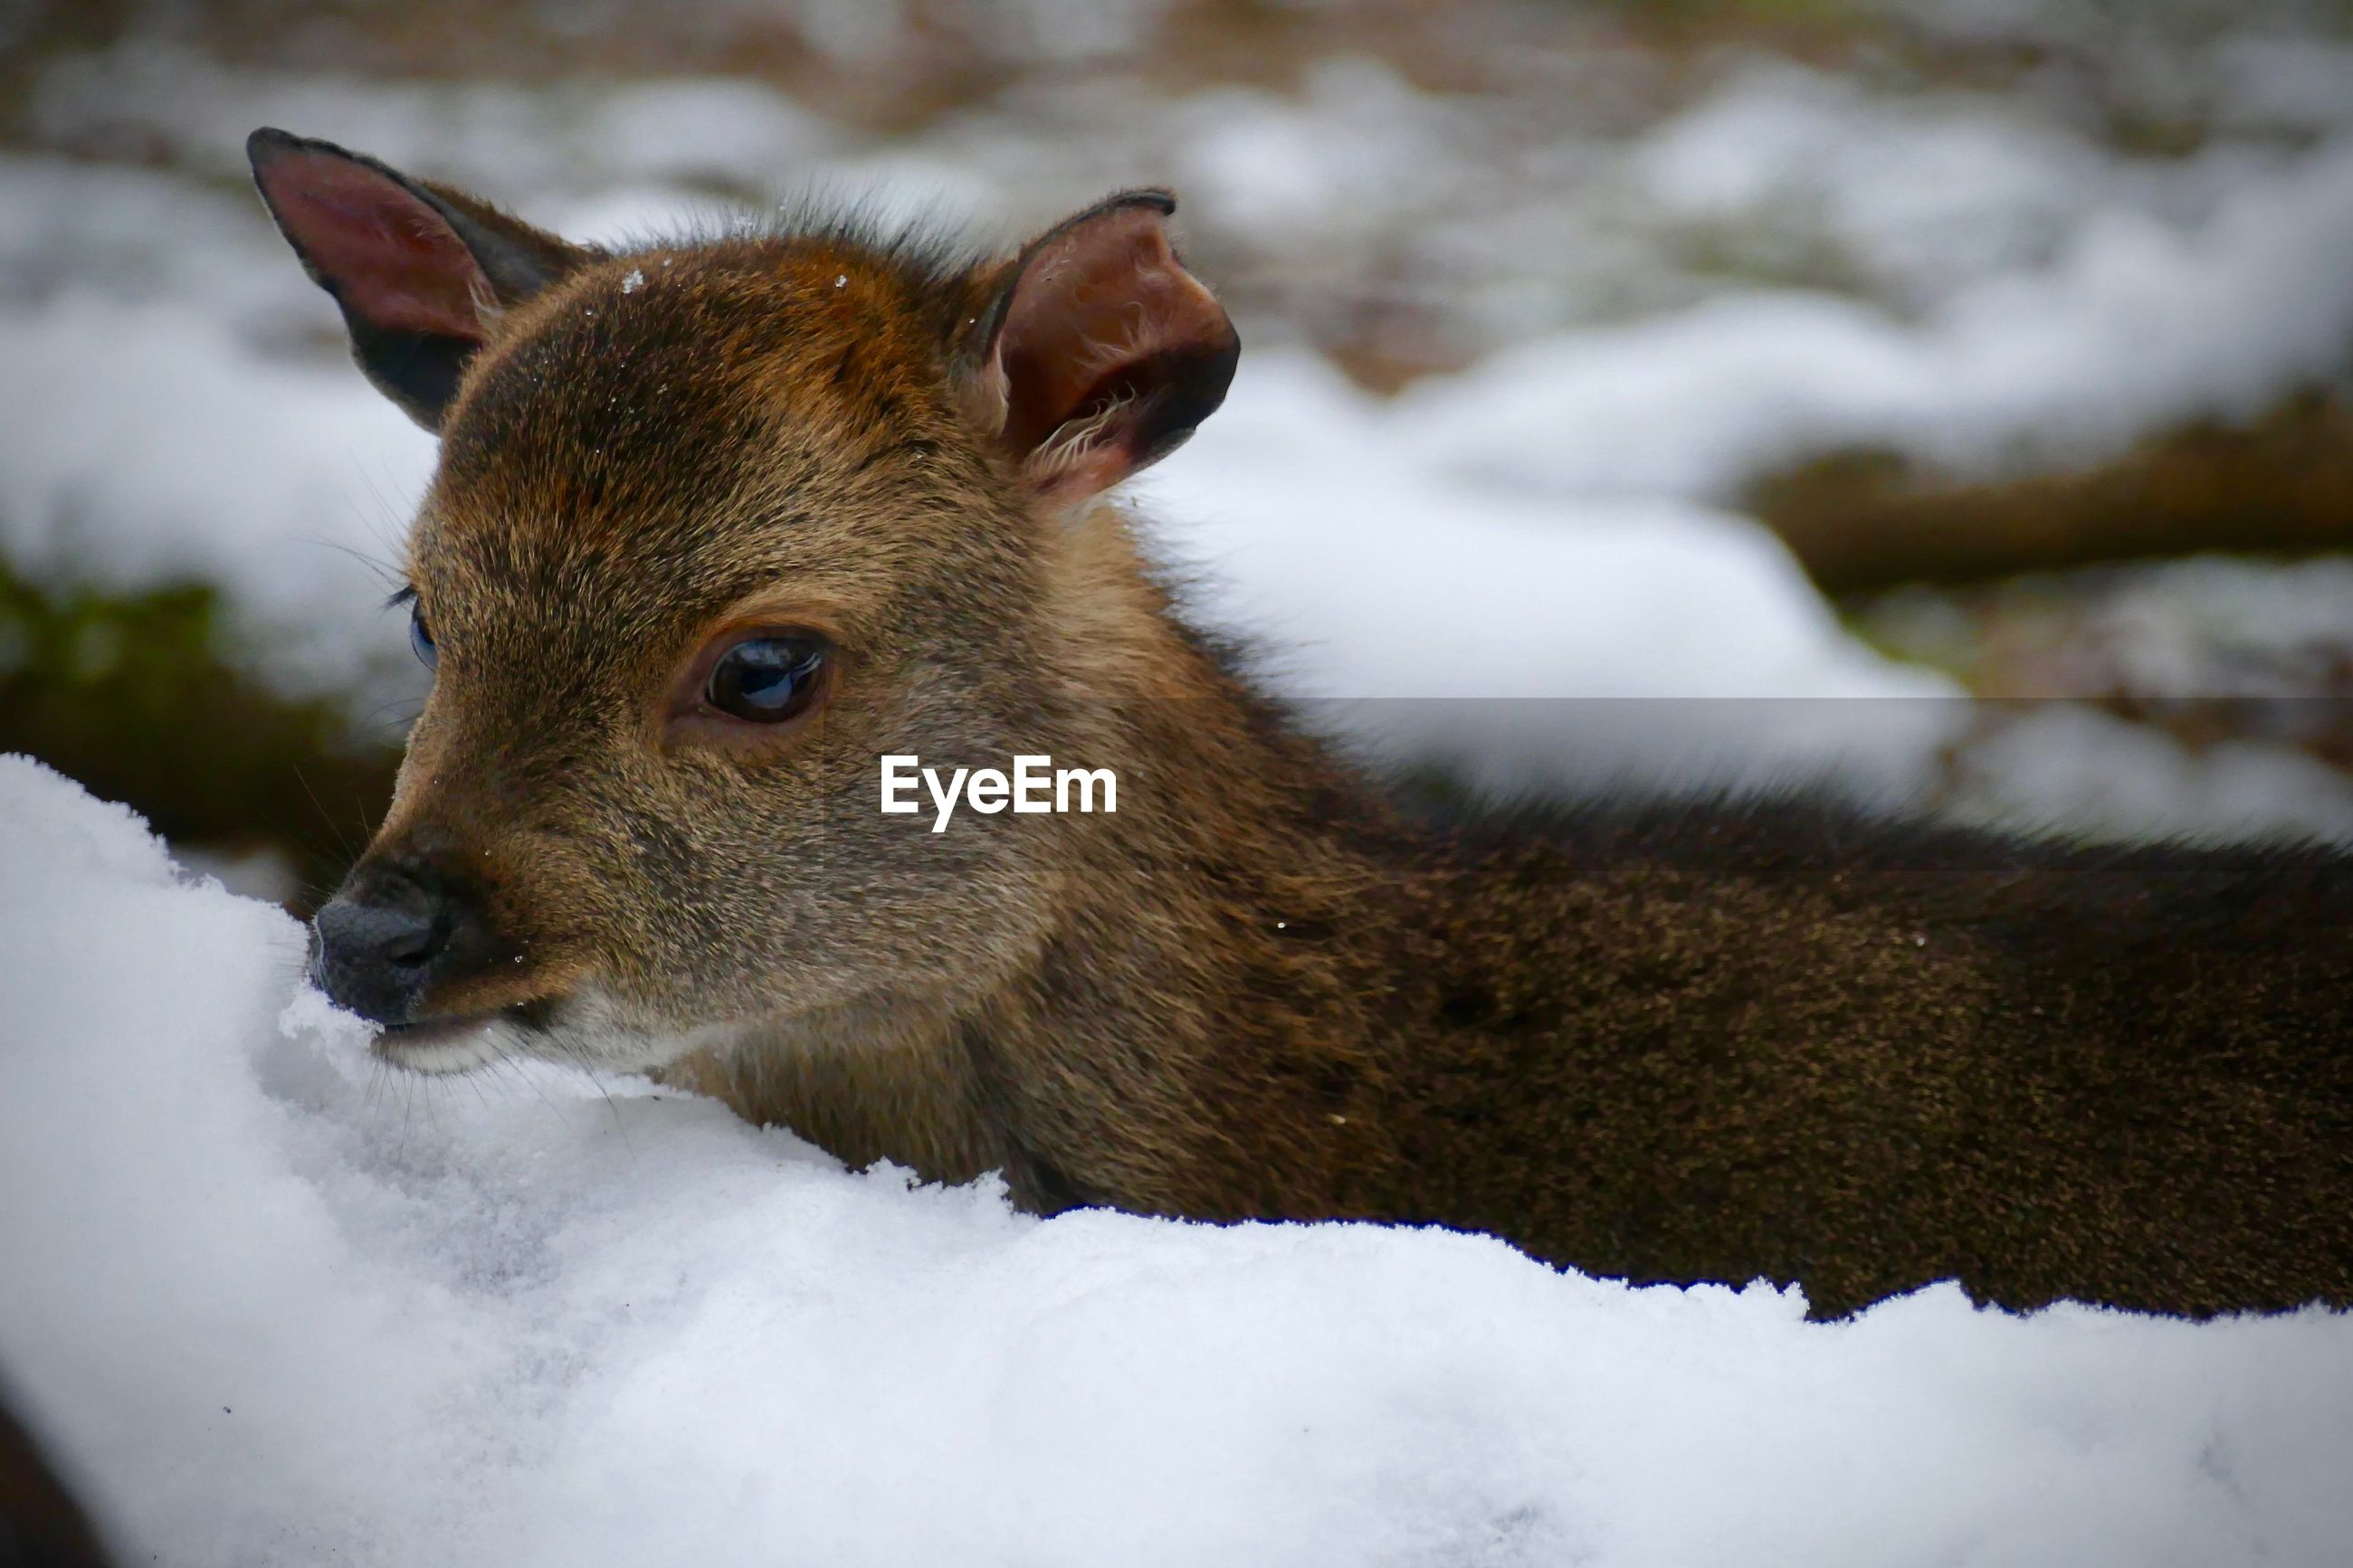 snow, animal, animal themes, mammal, winter, one animal, animal wildlife, cold temperature, animals in the wild, vertebrate, close-up, no people, day, nature, focus on foreground, field, domestic animals, land, covering, herbivorous